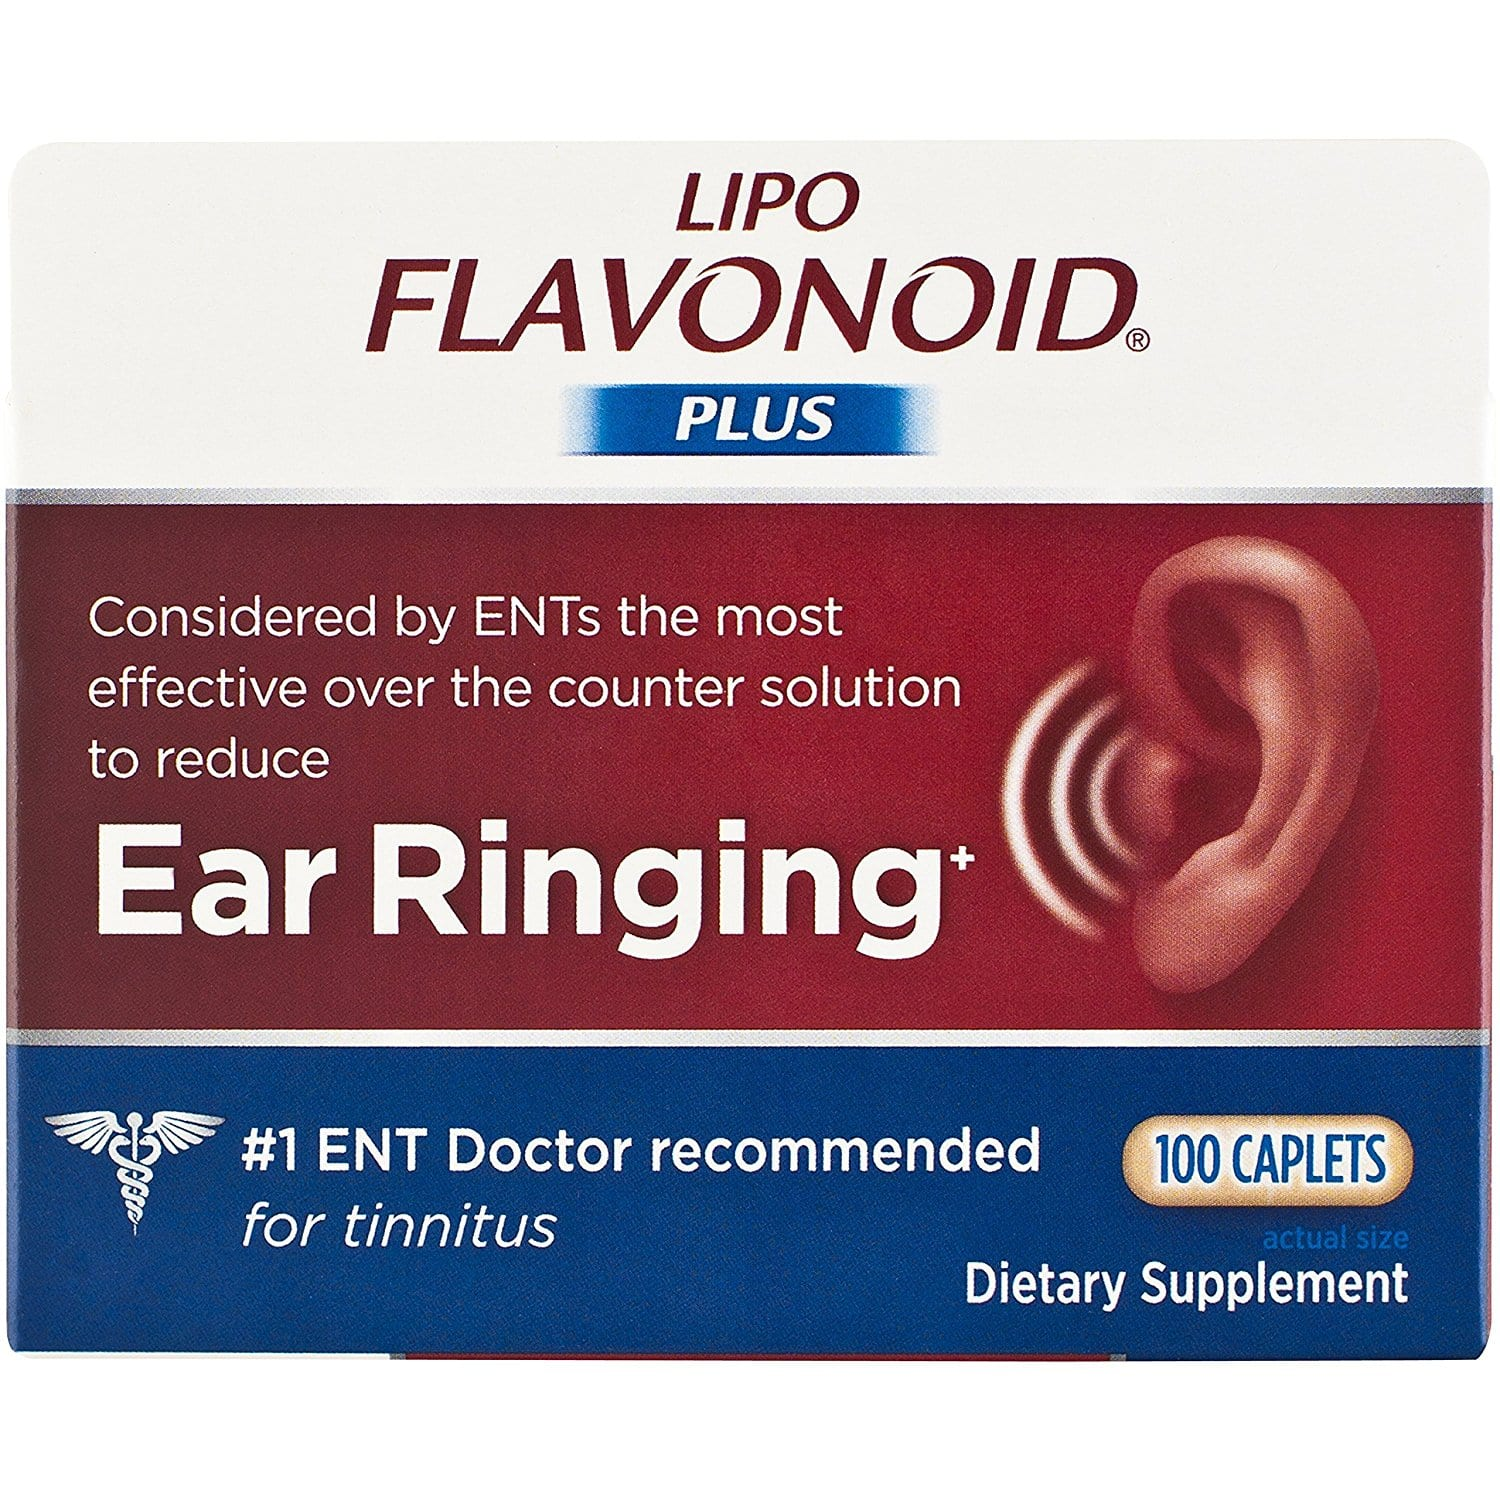 Lipo-Flavonoid Plus Ear Health Supplement, 100 Caplets $16.90 with Subscribe & Save @amazon. (Get %15 off more with 5 products order)